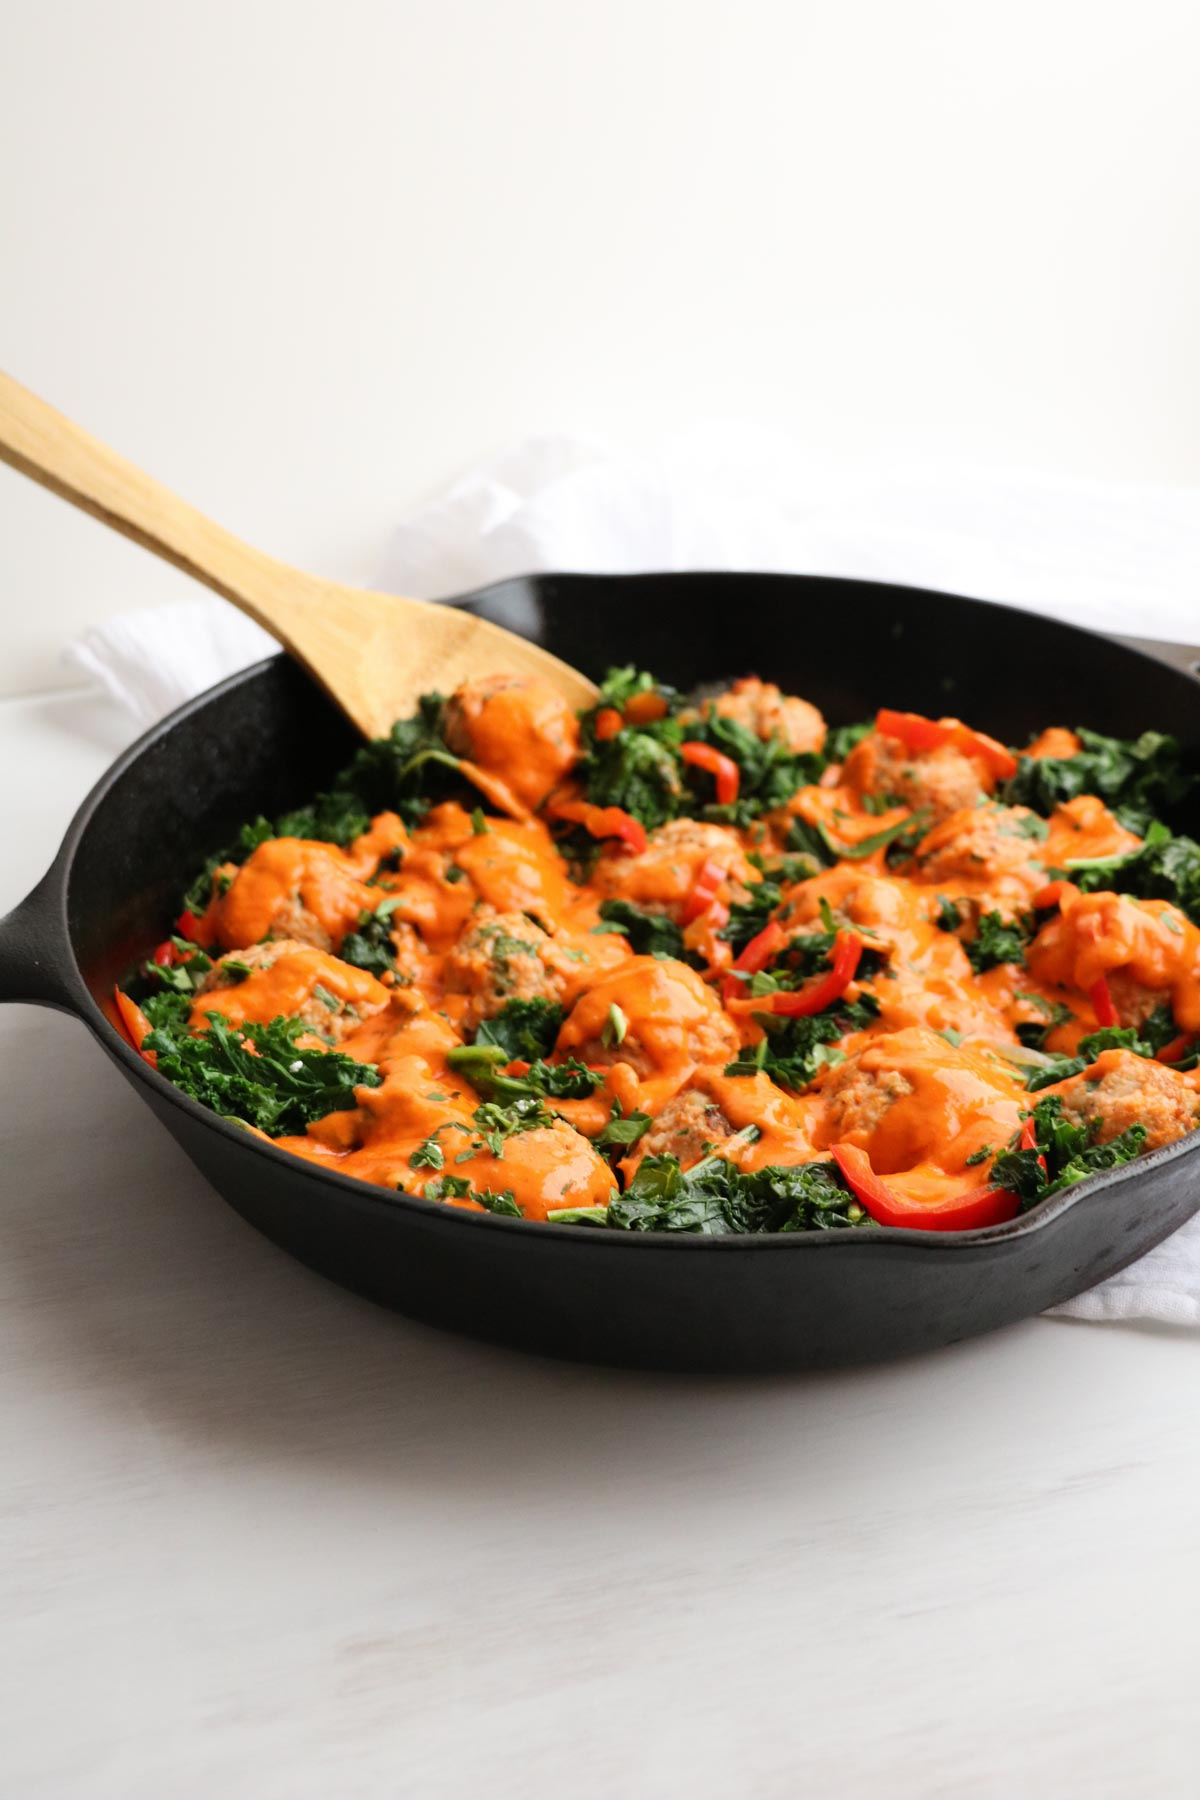 The best chicken meatballs in a creamy roasted red pepper feta cheese sauce with sauteed kale. OMG, so good!